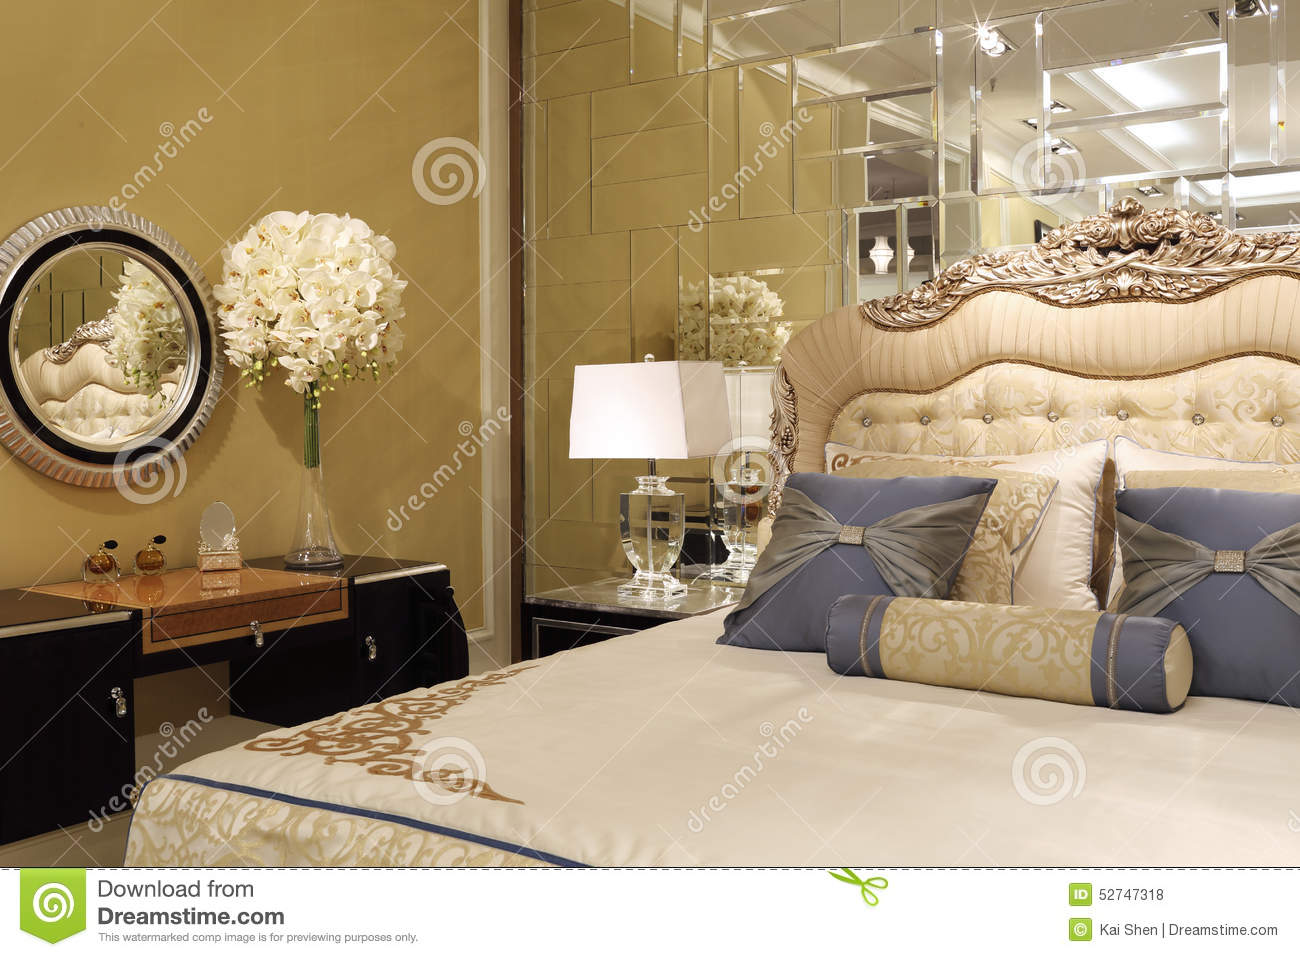 The mirror wall in the bedroom. The Mirror Wall In The Bedroom Stock Photo   Image  52747318